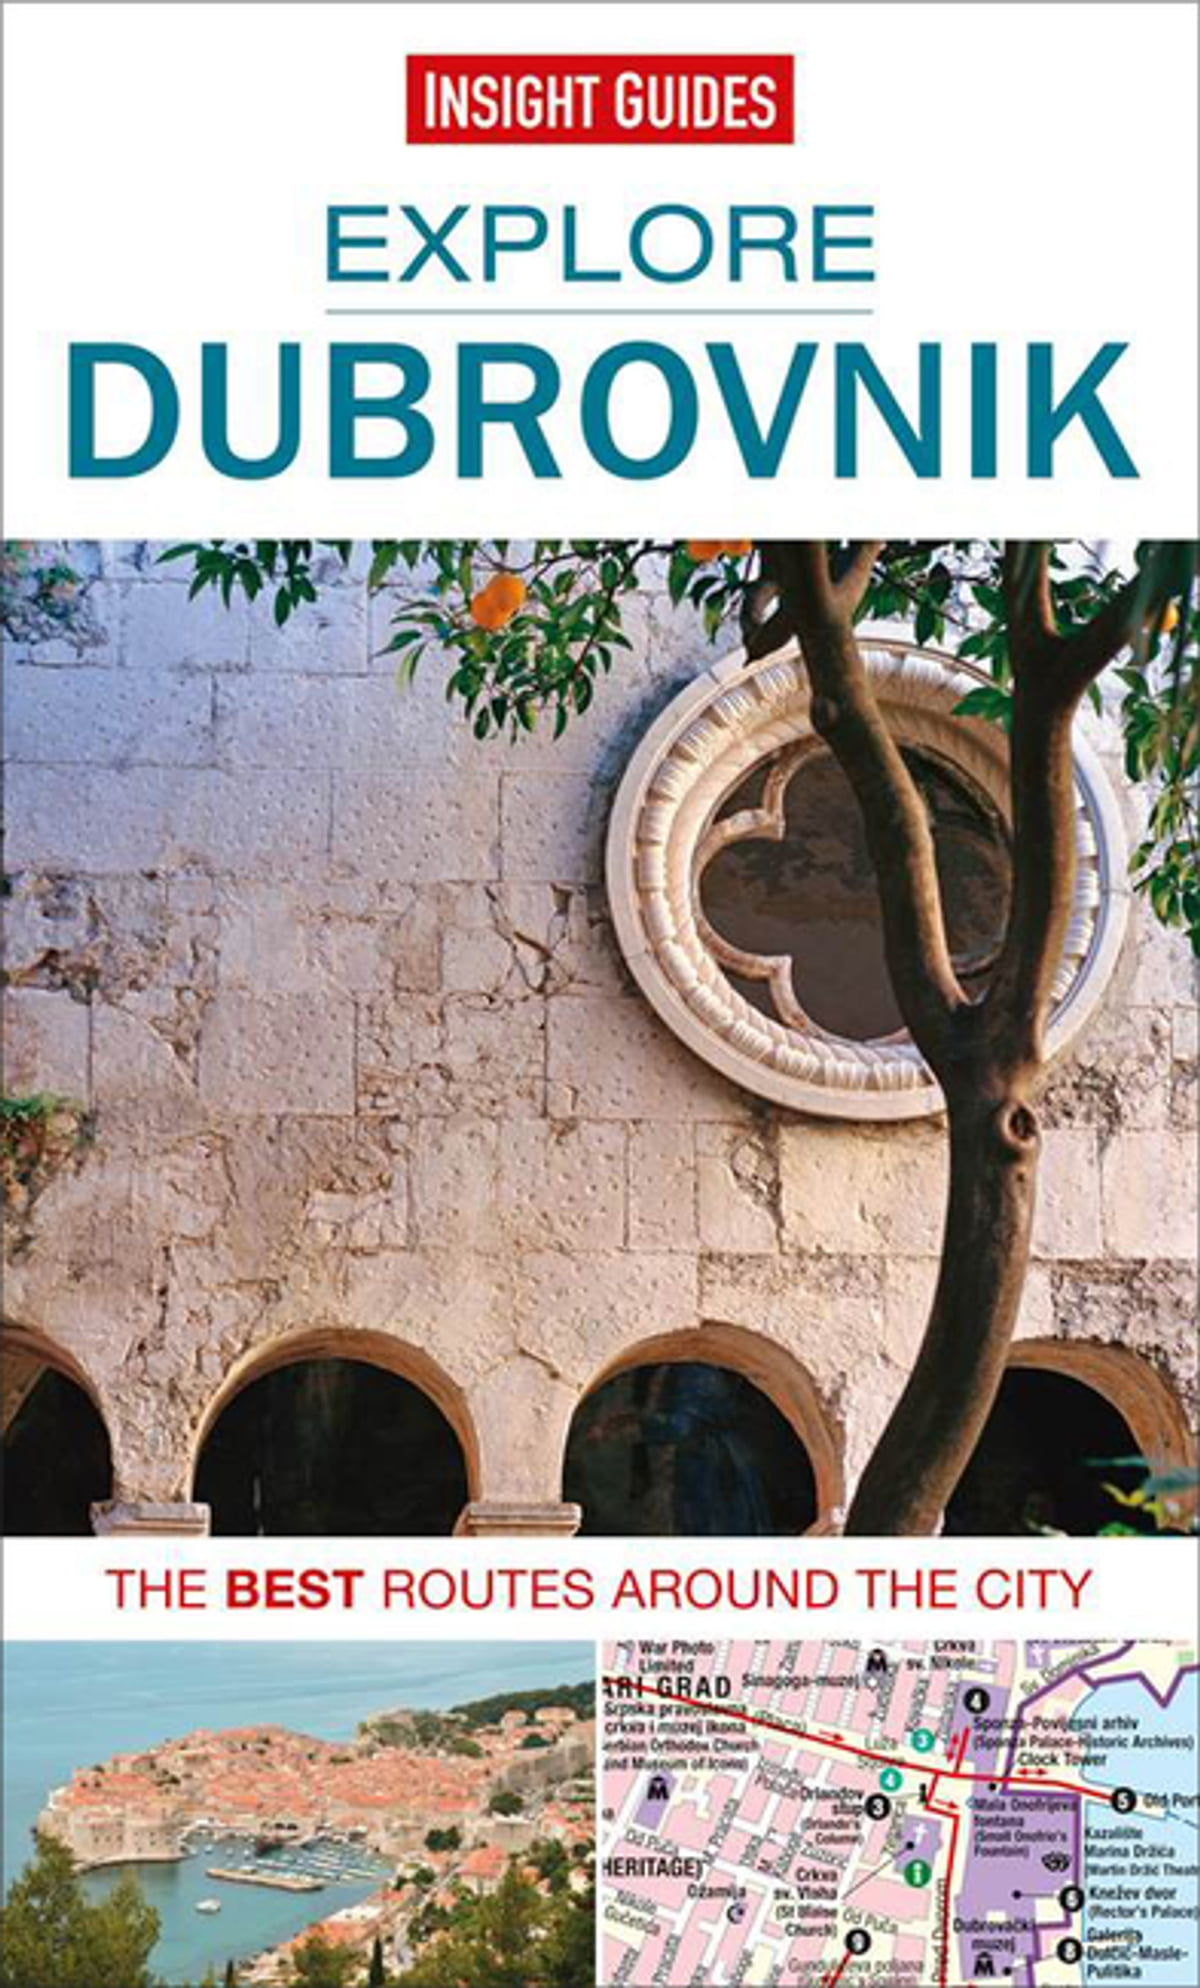 Insight Guides: Explore Dubrovnik eBook by Insight Guides - 9781780058870 |  Rakuten Kobo